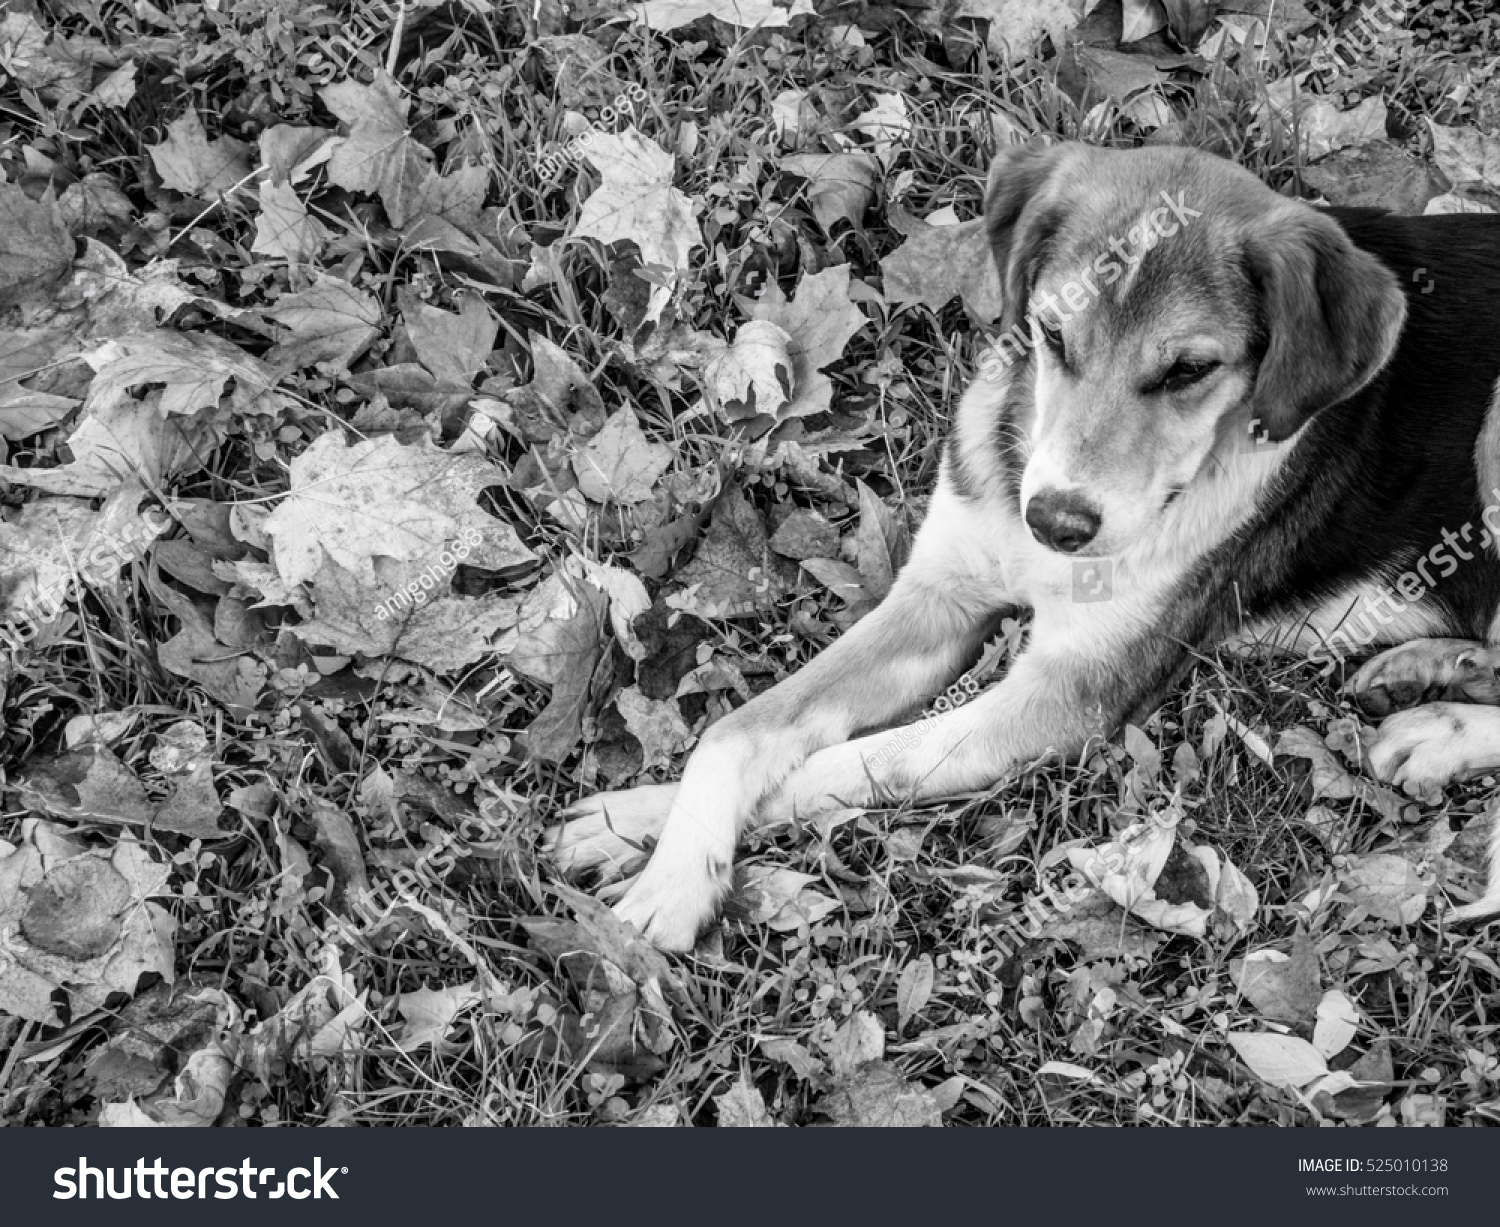 stock-photo-spotted-dog-lying-with-crossed-legs-in-the-fallen-leaves-black-and-white-525010138